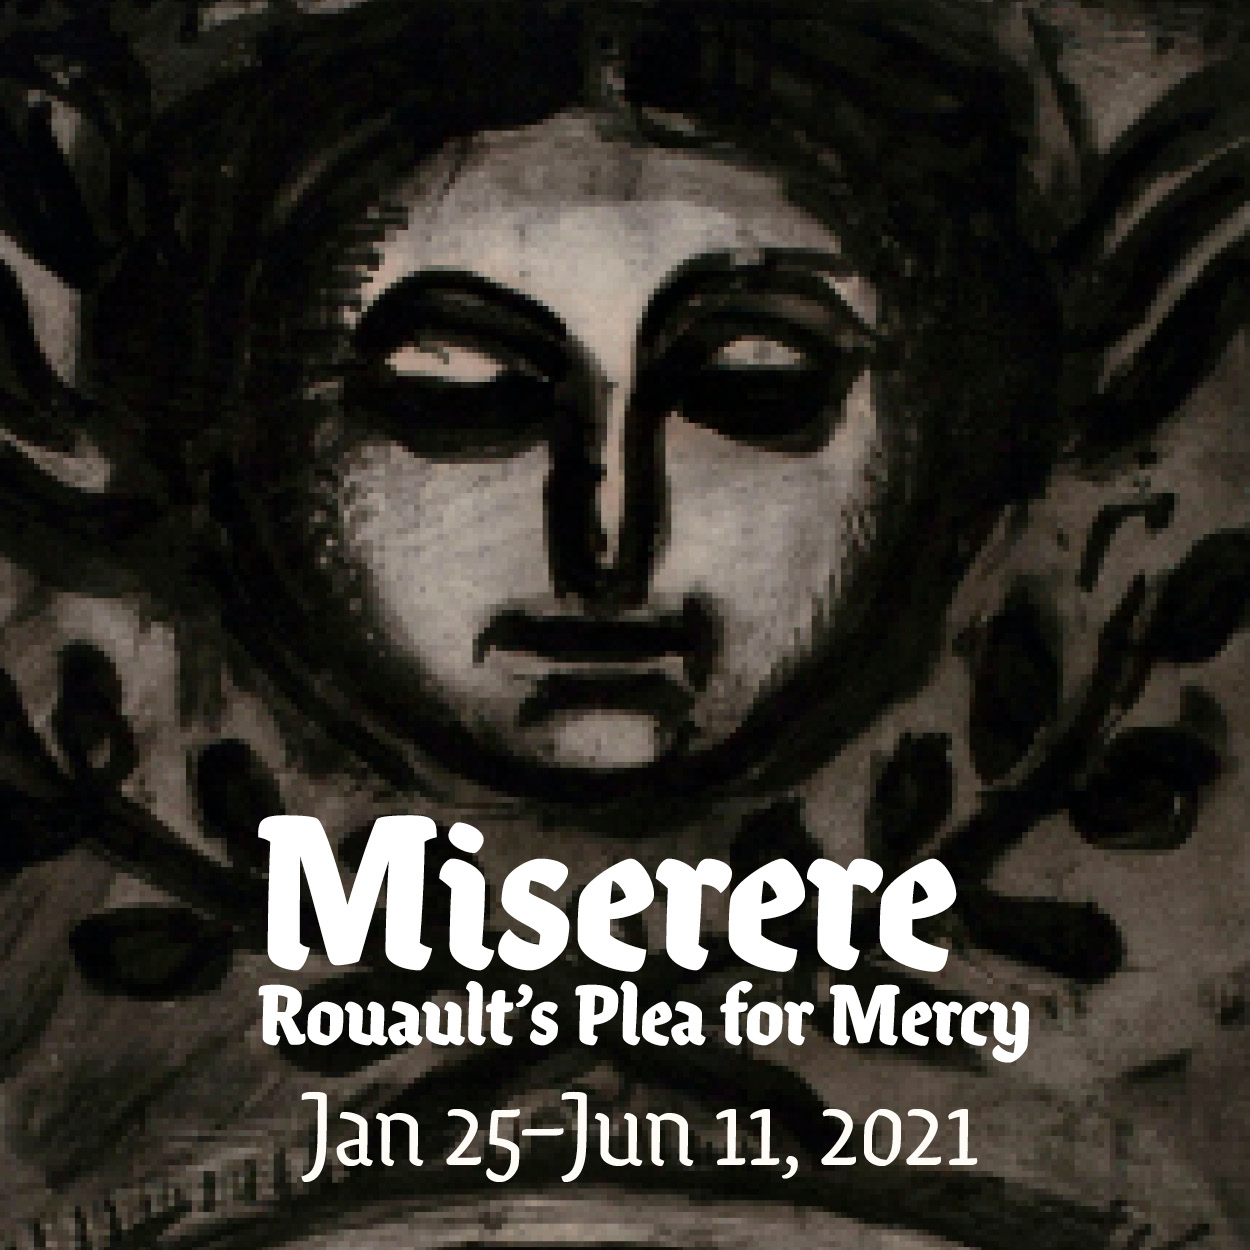 Miserere: Rouault's Plea for Mercy